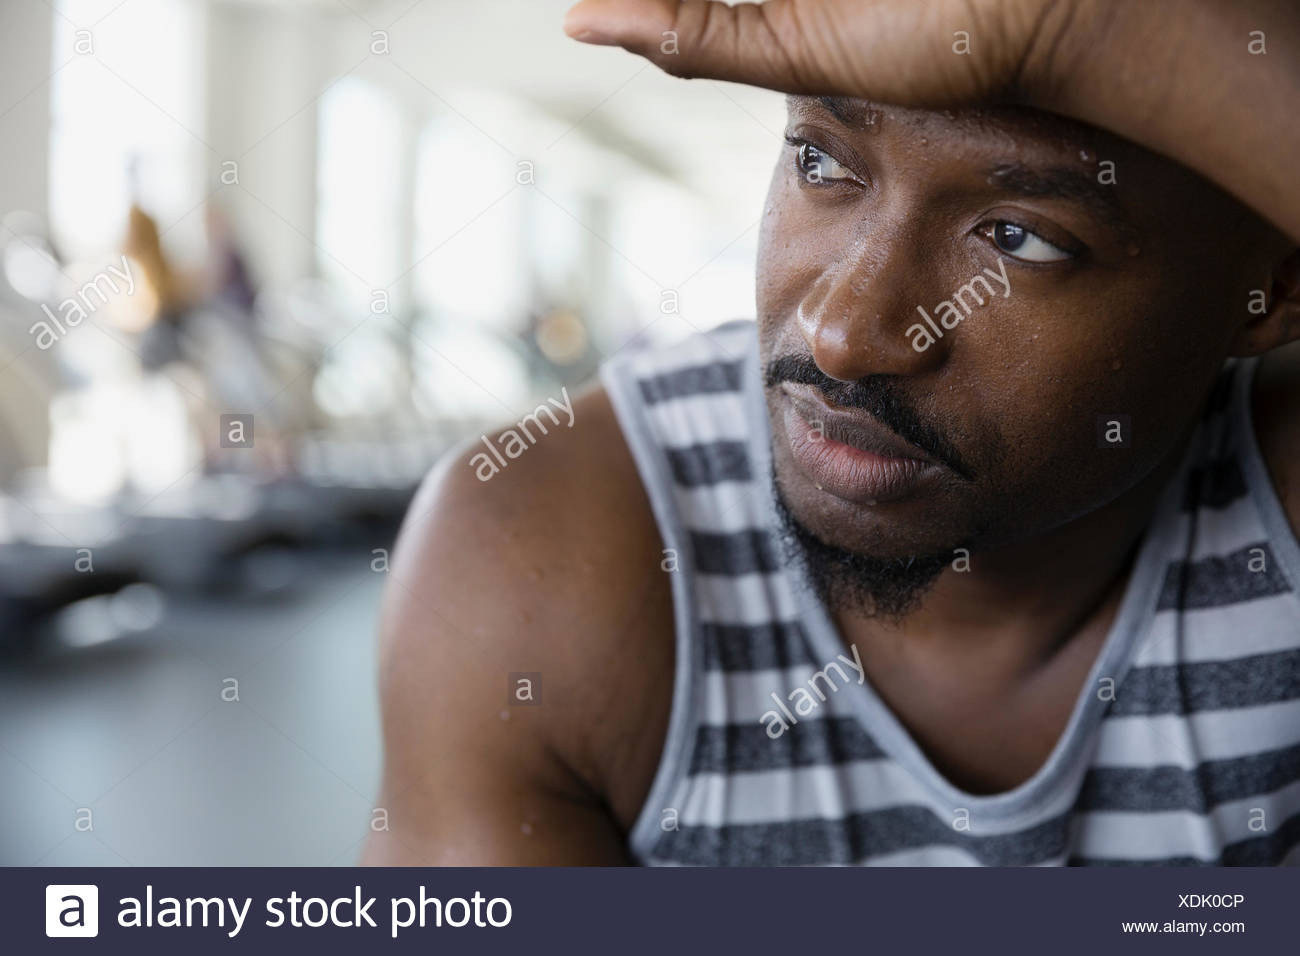 Close up portrait tired man looking away gym - Stock Image